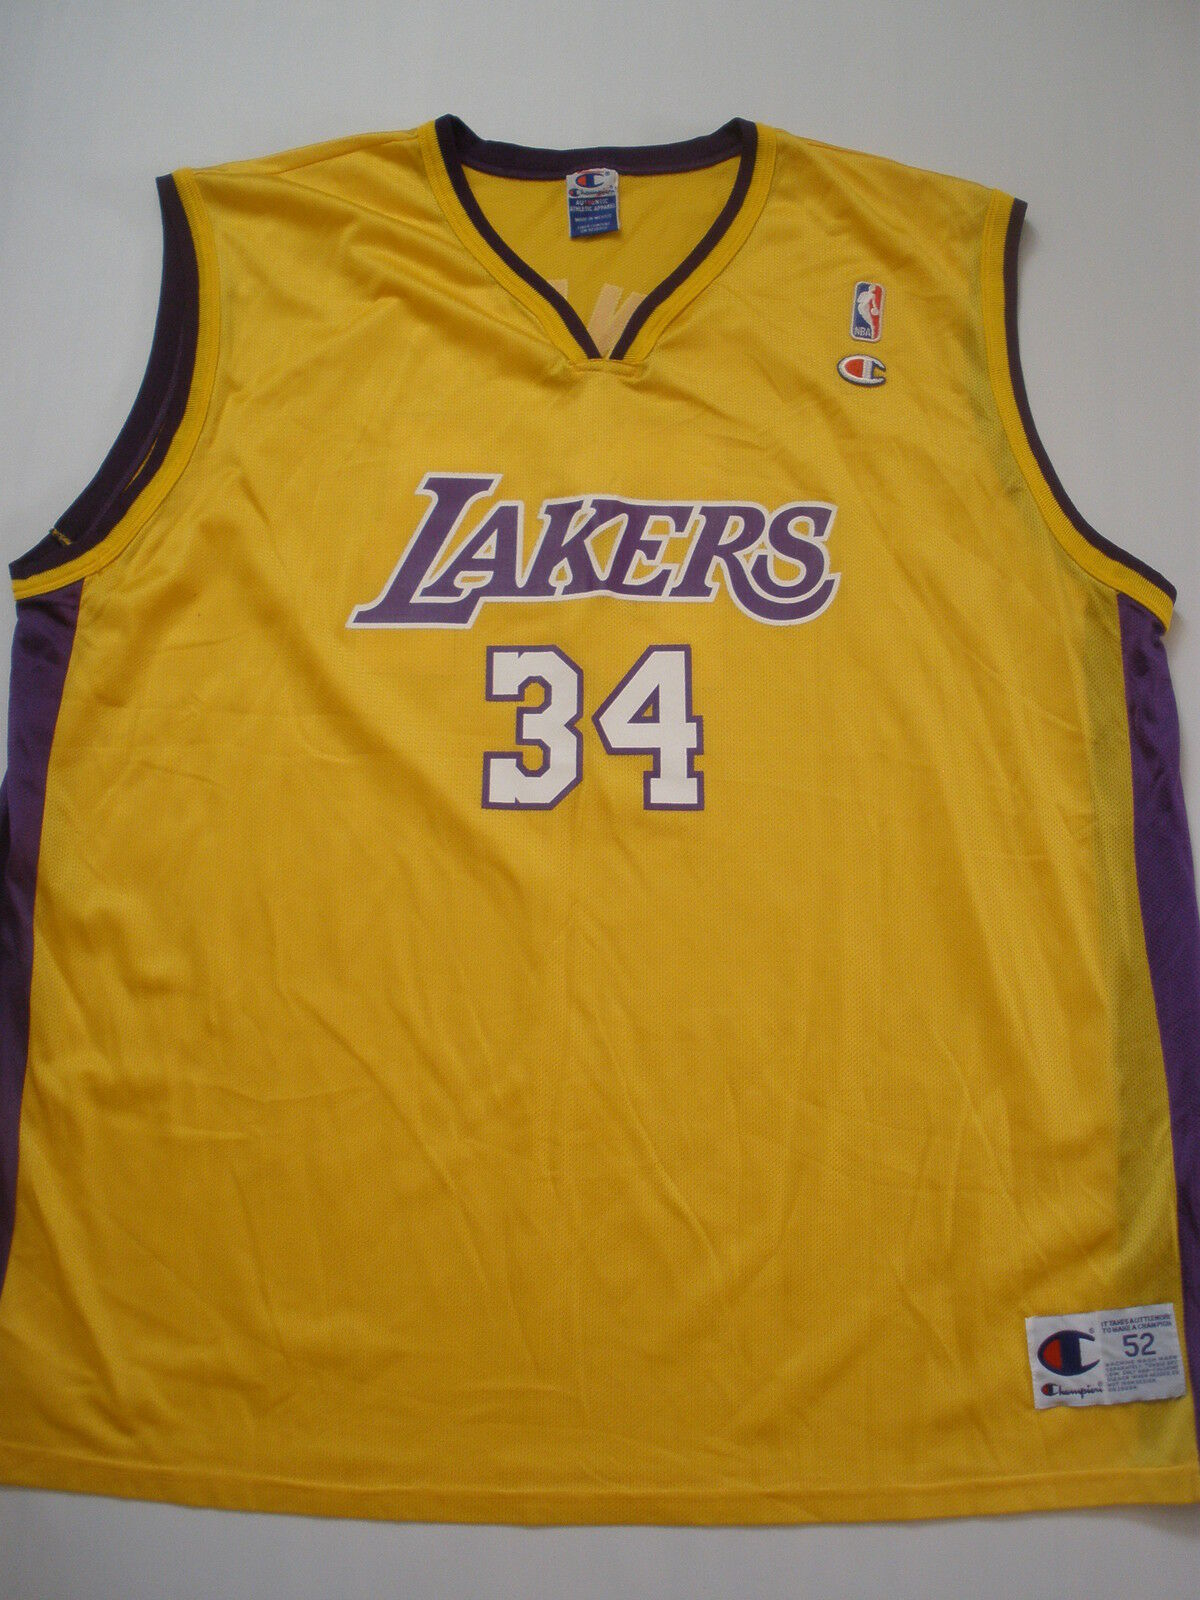 CHAMPION LA.LAKERS O'NEAL    34 jersey Größe 52  NEW SALE